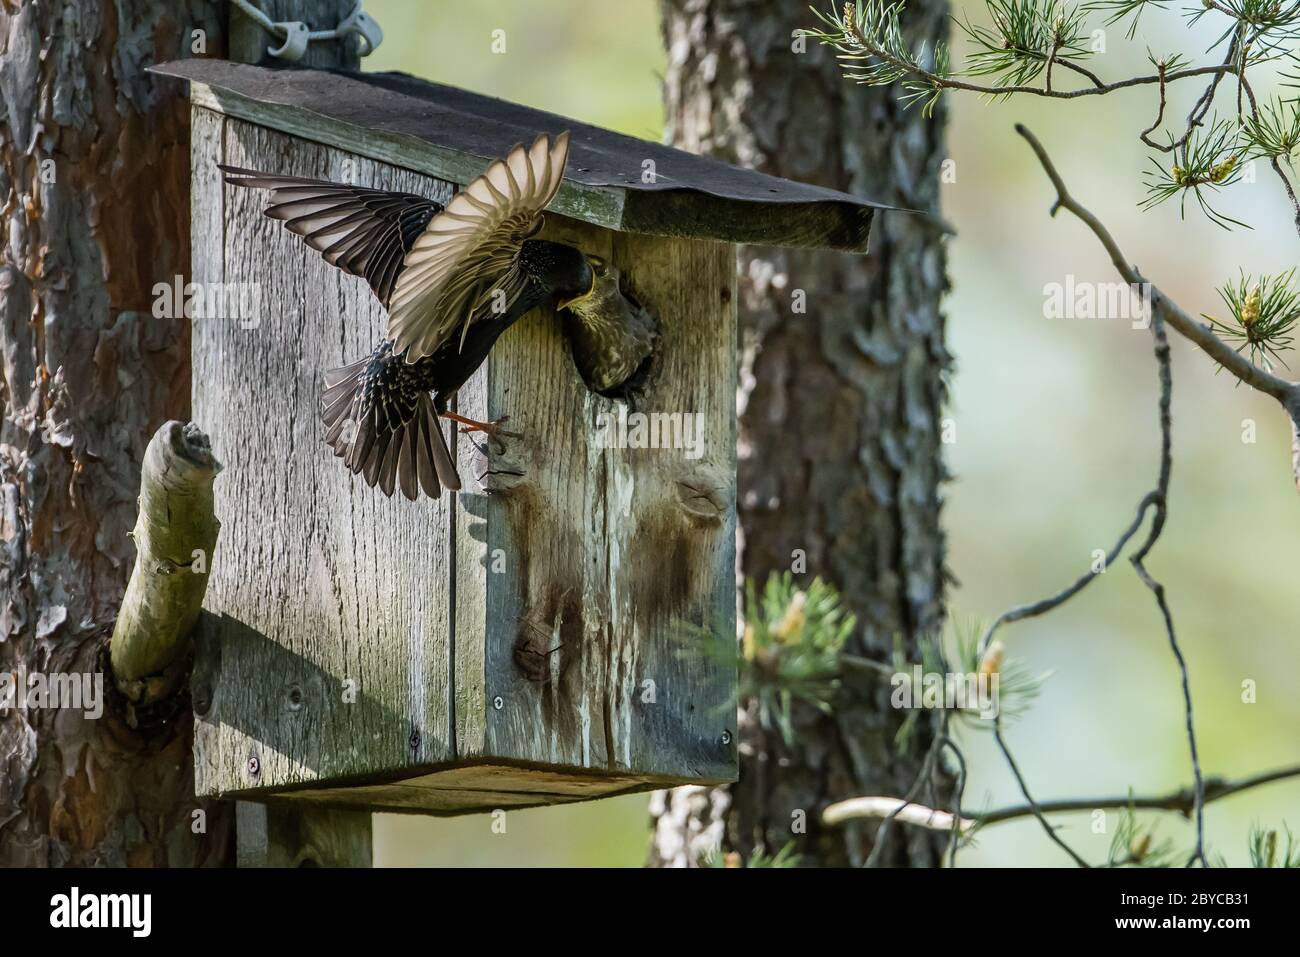 The beautiful common starling (Sturnus vulgaris) feed the nestling deep in the throat at the nest box in Uppland, Sweden Stock Photo